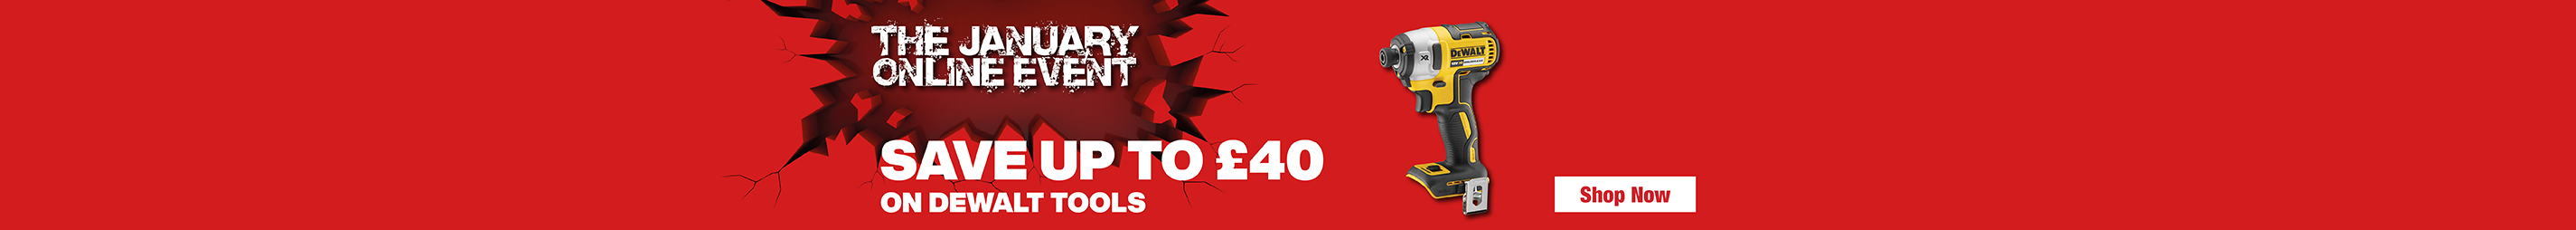 Save Up to £40 on Tools